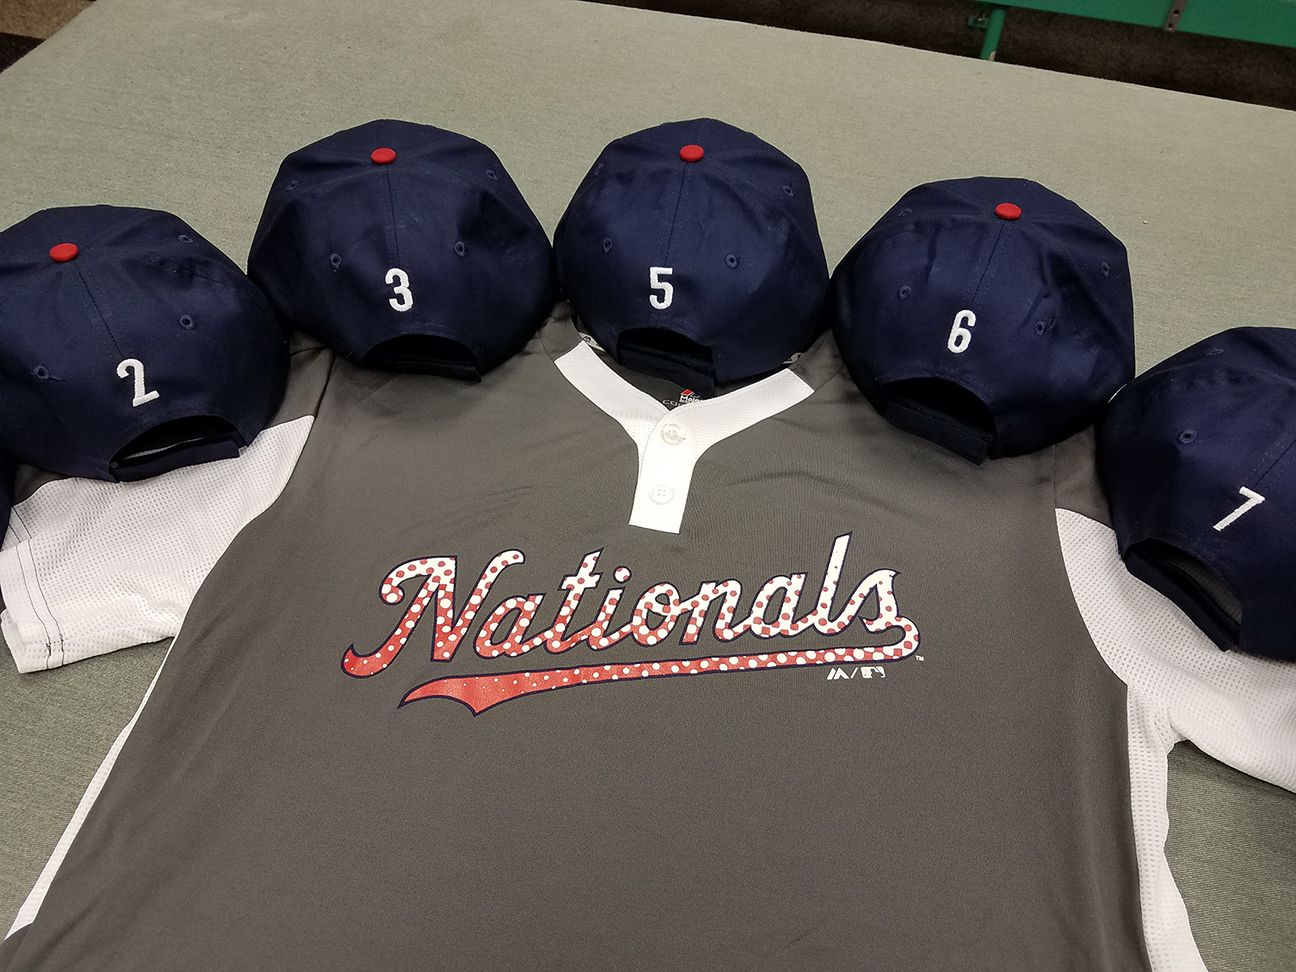 Baseball Cap Personalization Special Now 5 Each If Brought In Individually Or 4 Each If Multiples Brought In At On Custom Design Shirts Fan Wear Spirit Wear